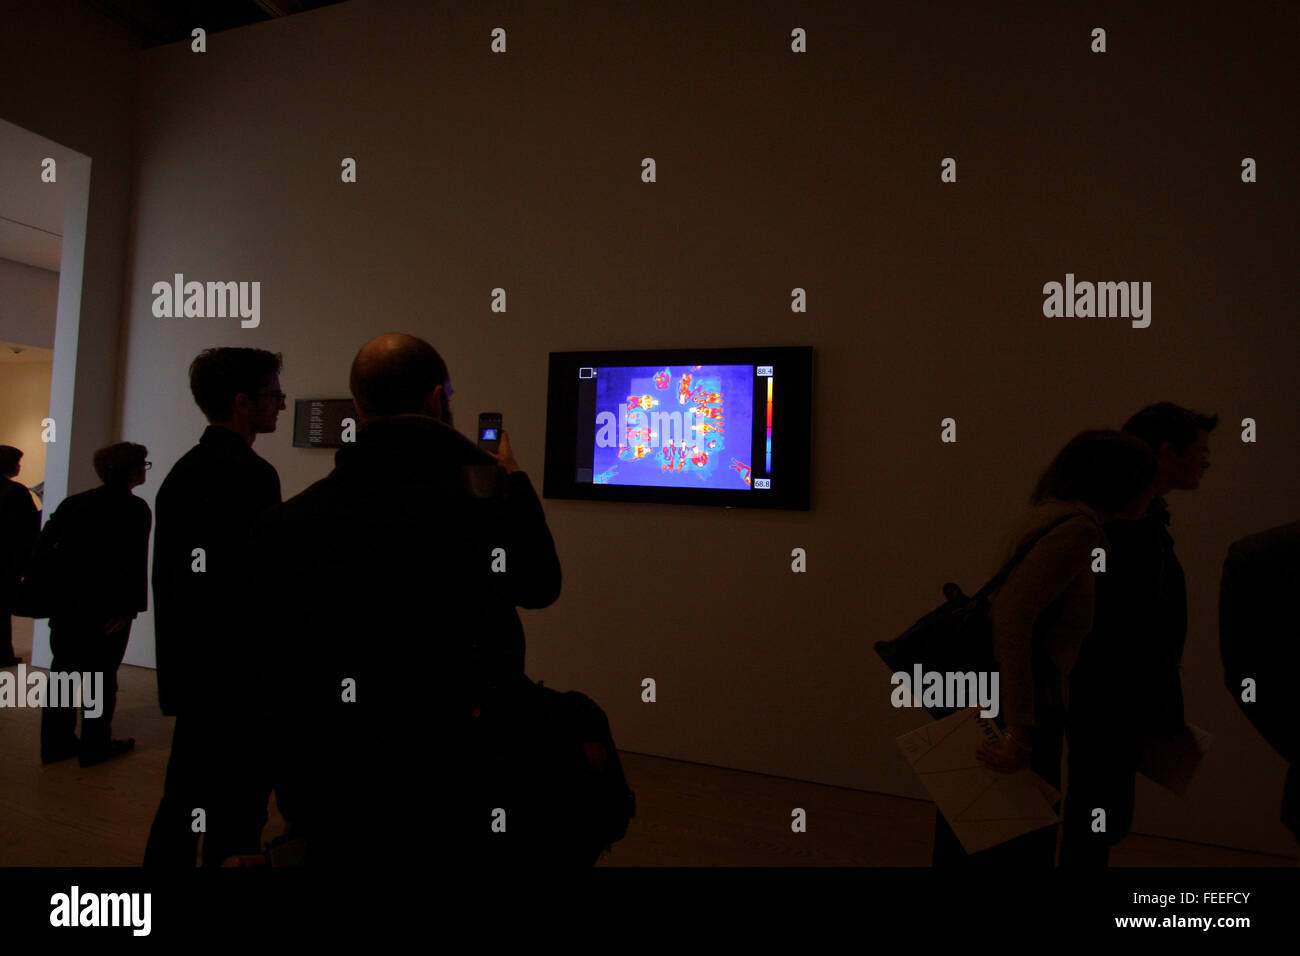 Astro Noise, the first solo exhibit by artist Laura Poitras at the Whitney Museum of American Art in New York City - Stock Image